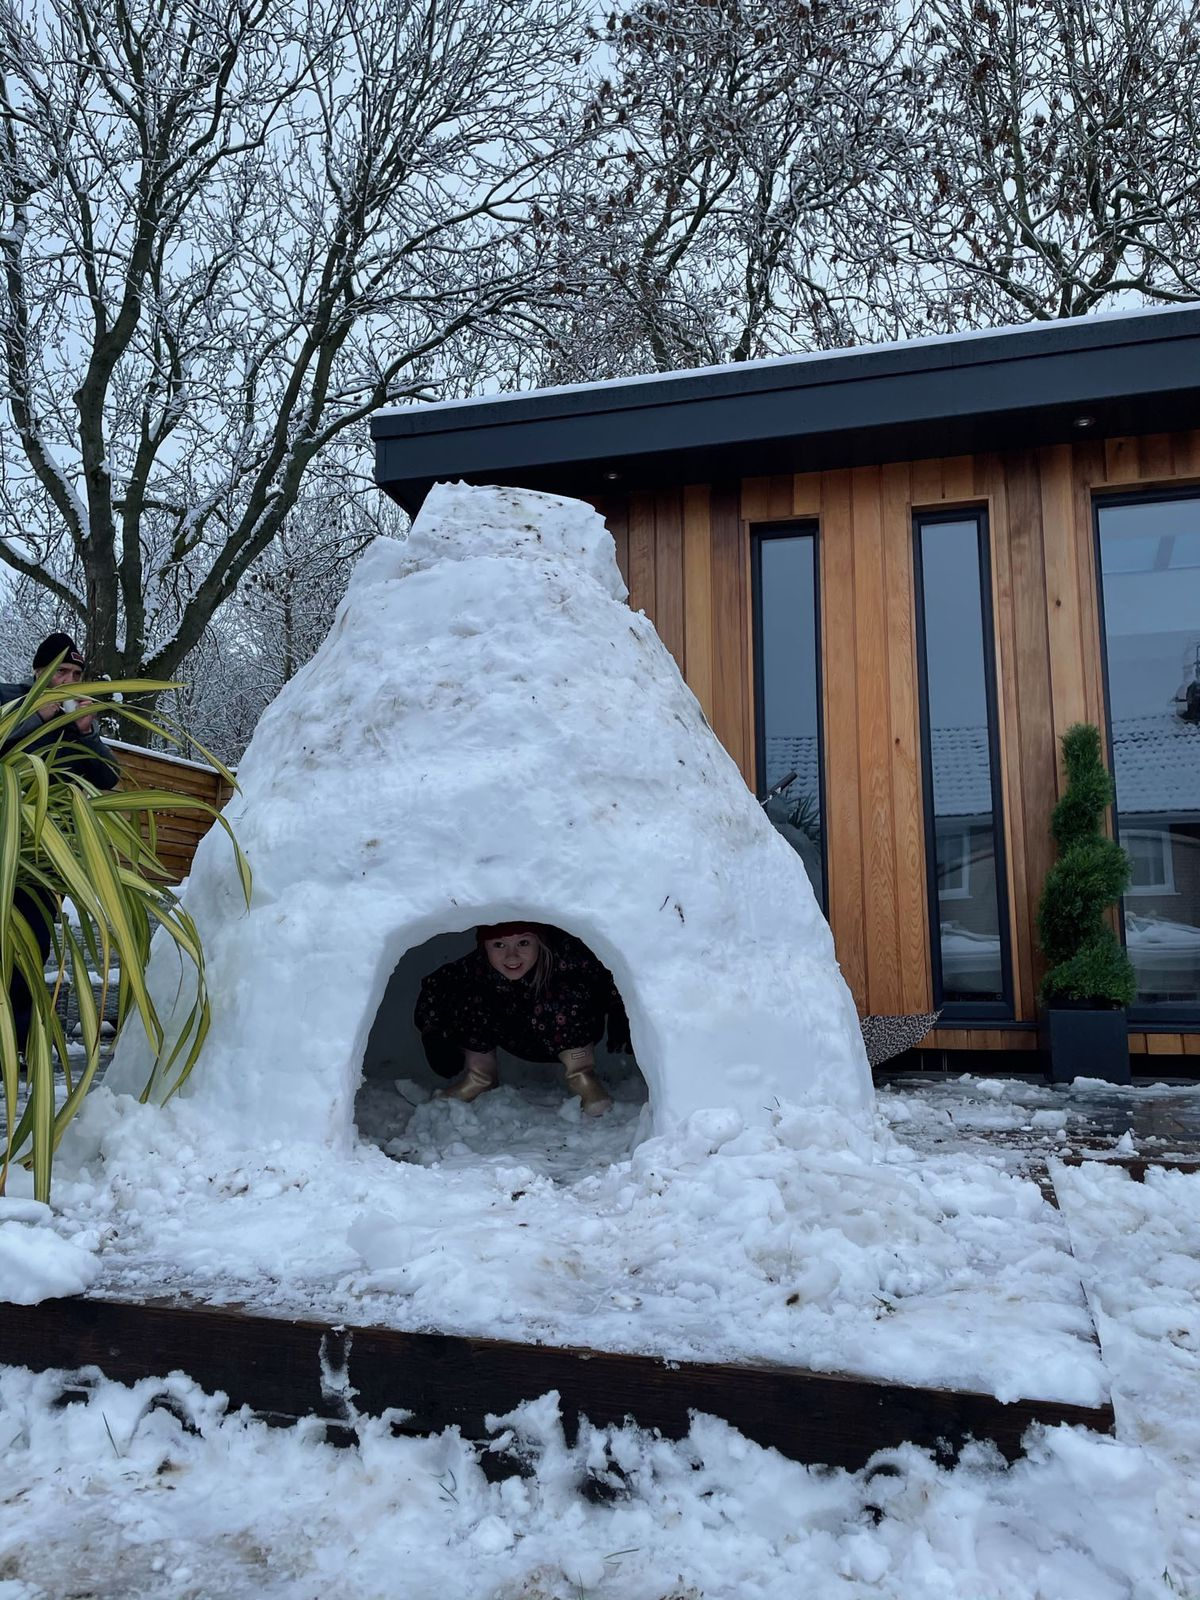 Kirsty Evans took this of an igloo in Westcroft, South Staffordshire